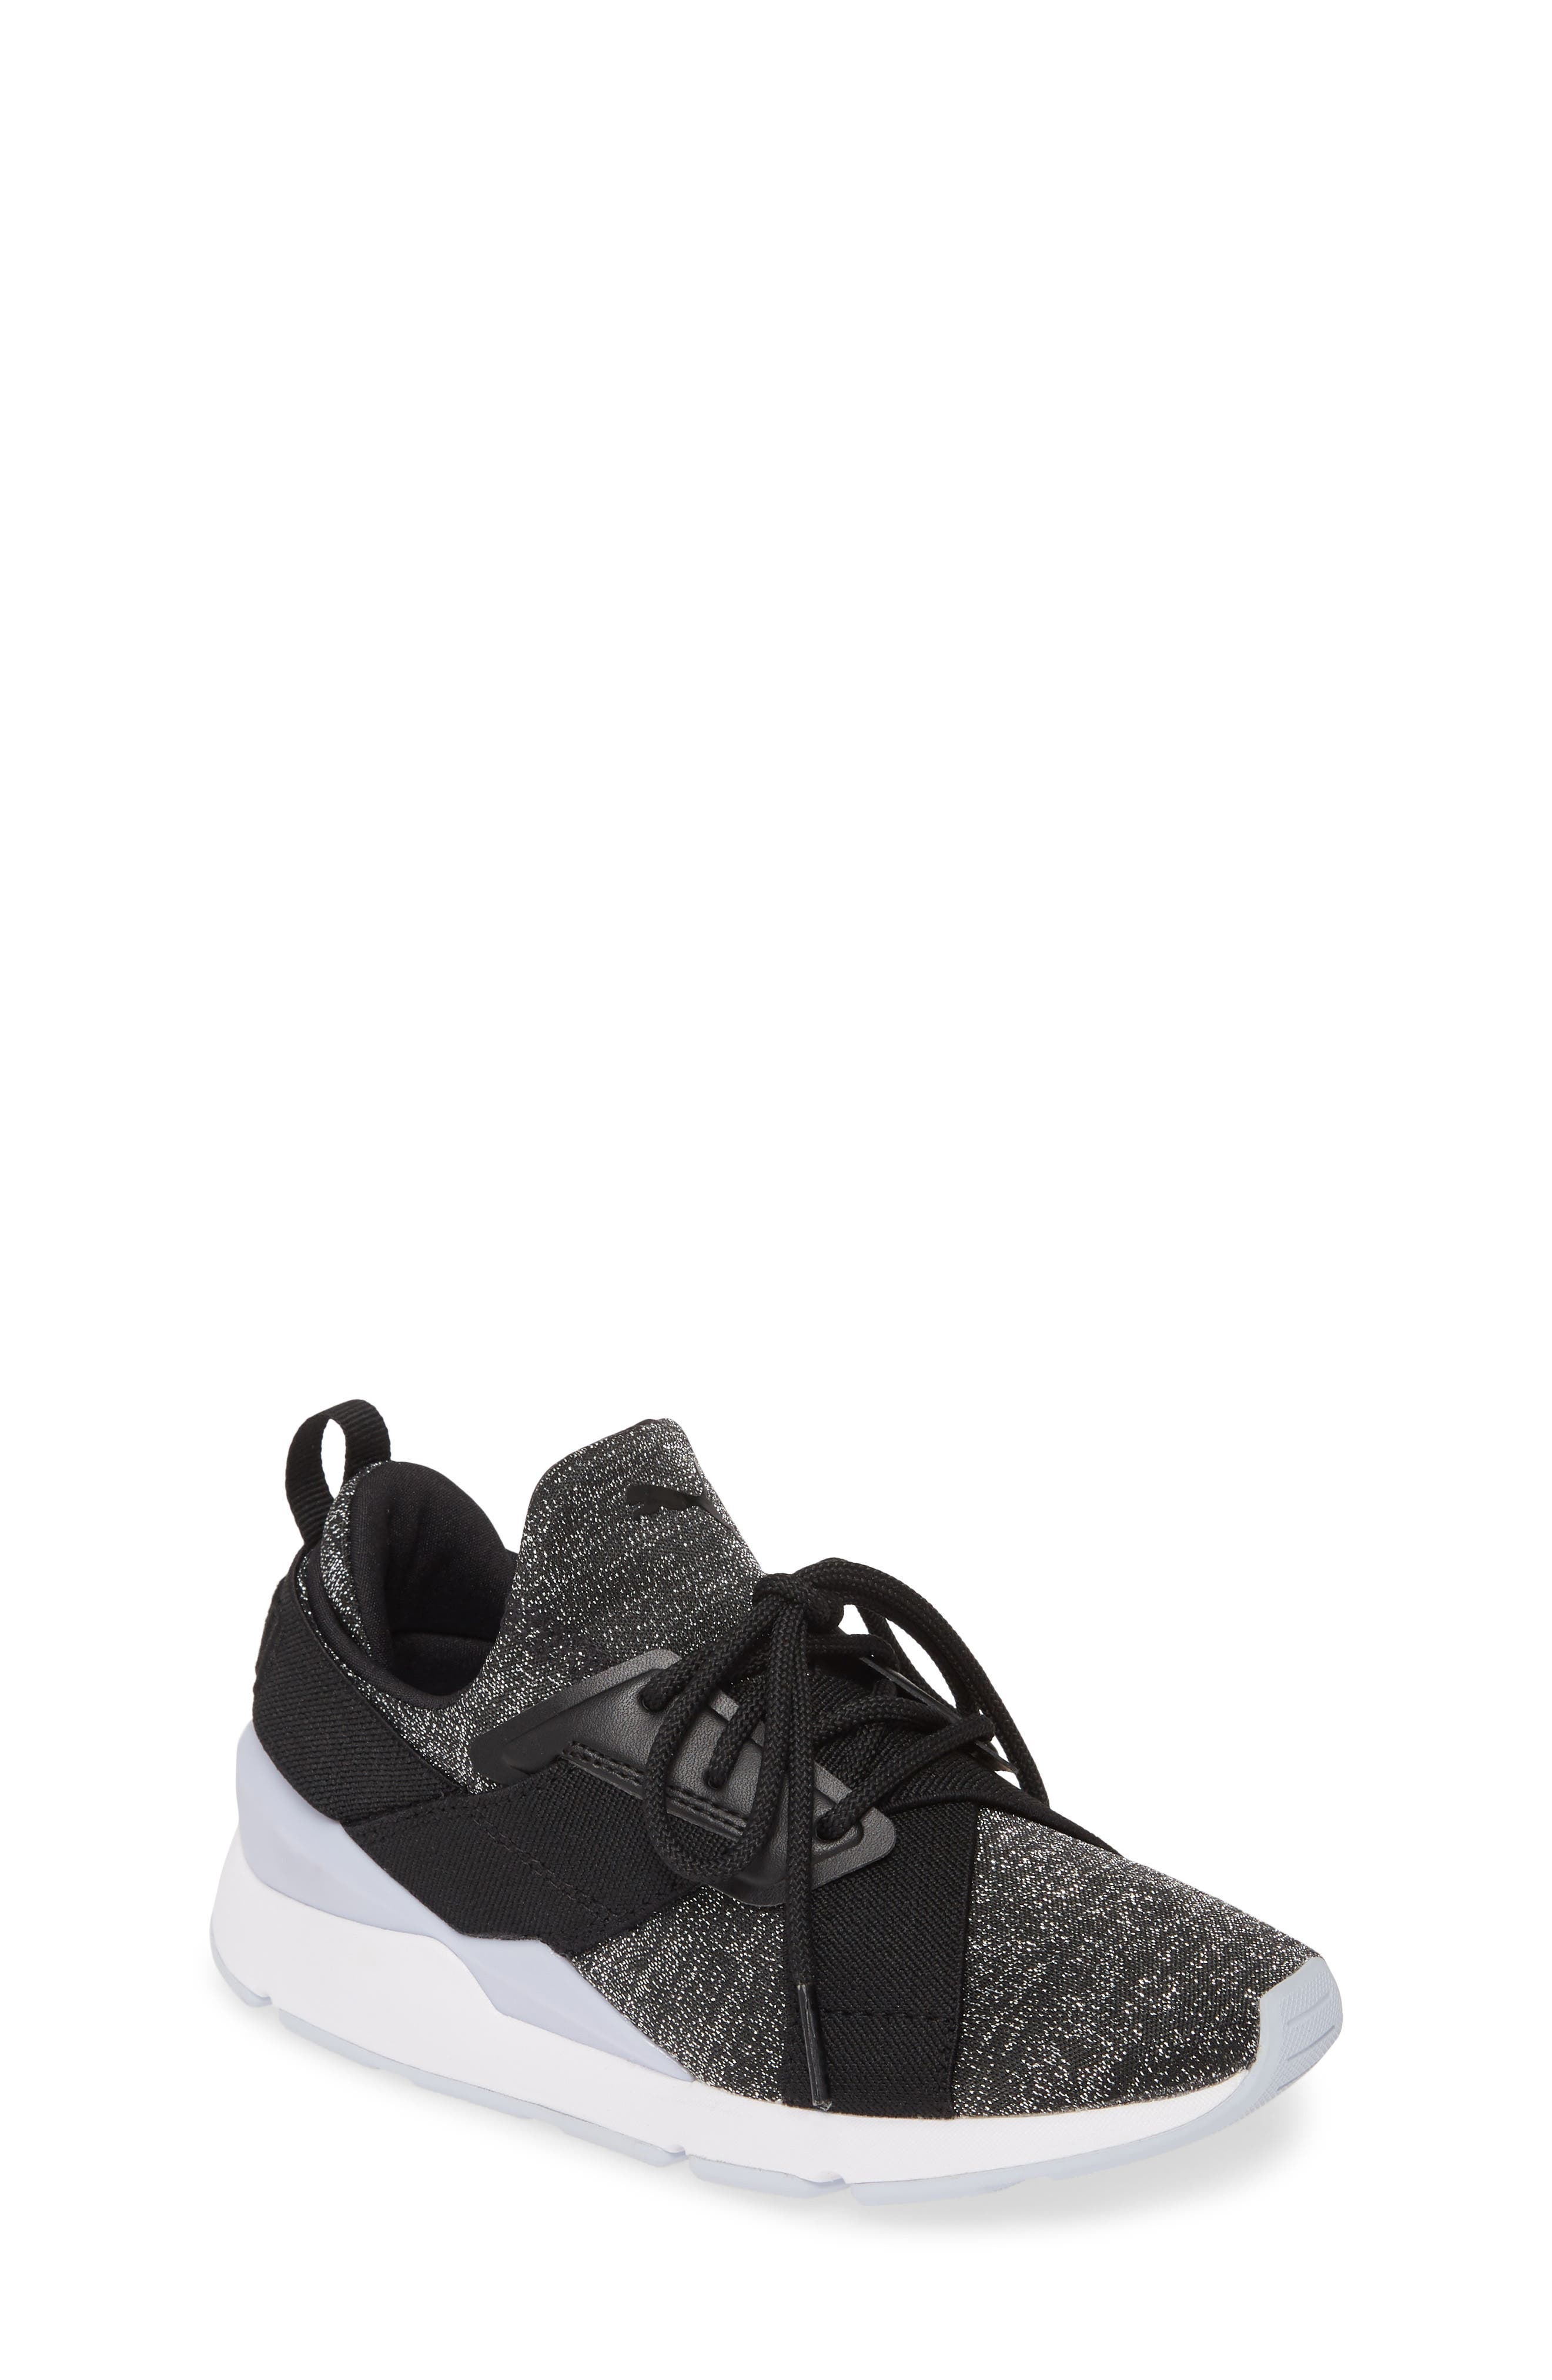 separation shoes eac7f fc7b7 Girls' PUMA Shoes | Nordstrom